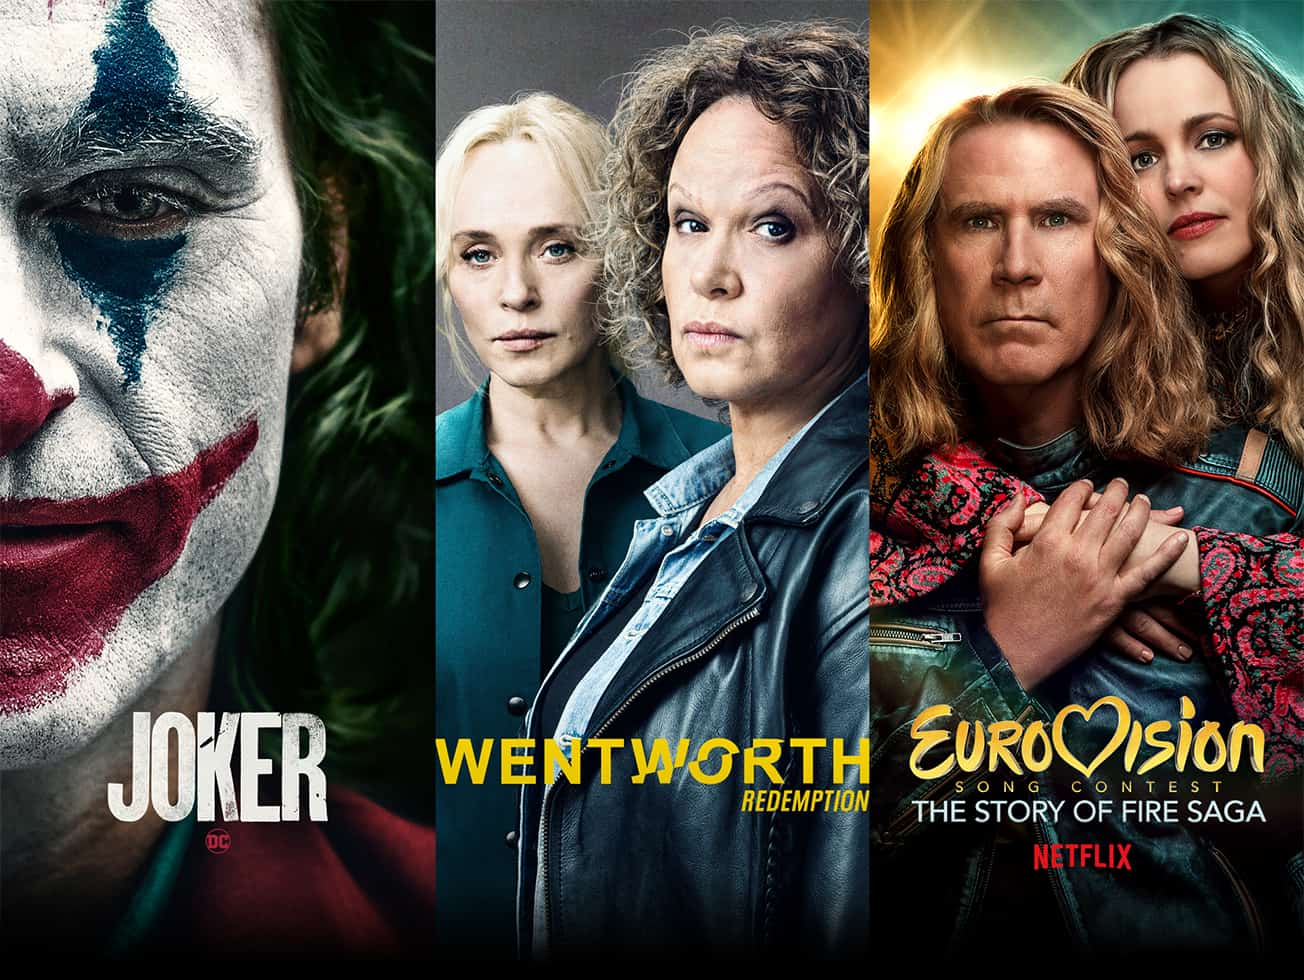 Watch great on demand content such as Joker, Wentworth and Eurovision.